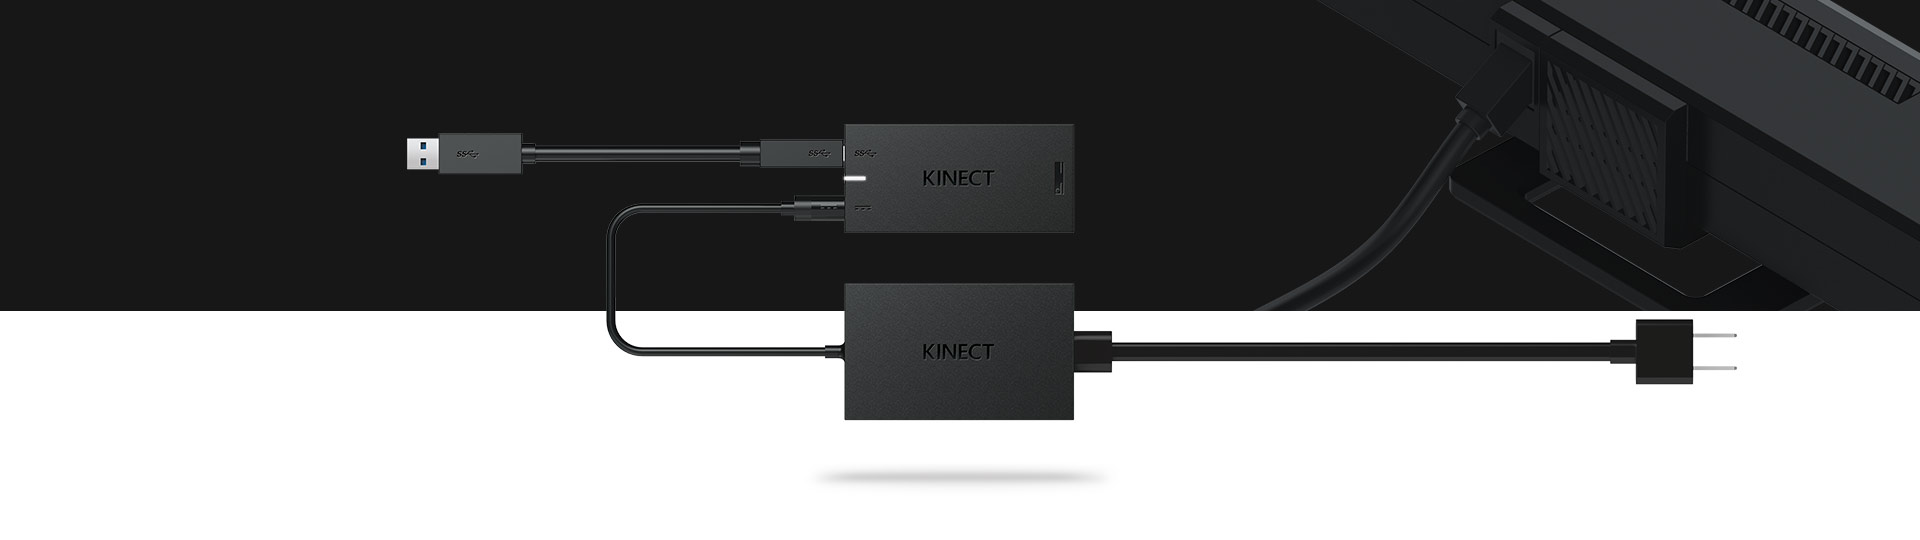 Adapter Kinect